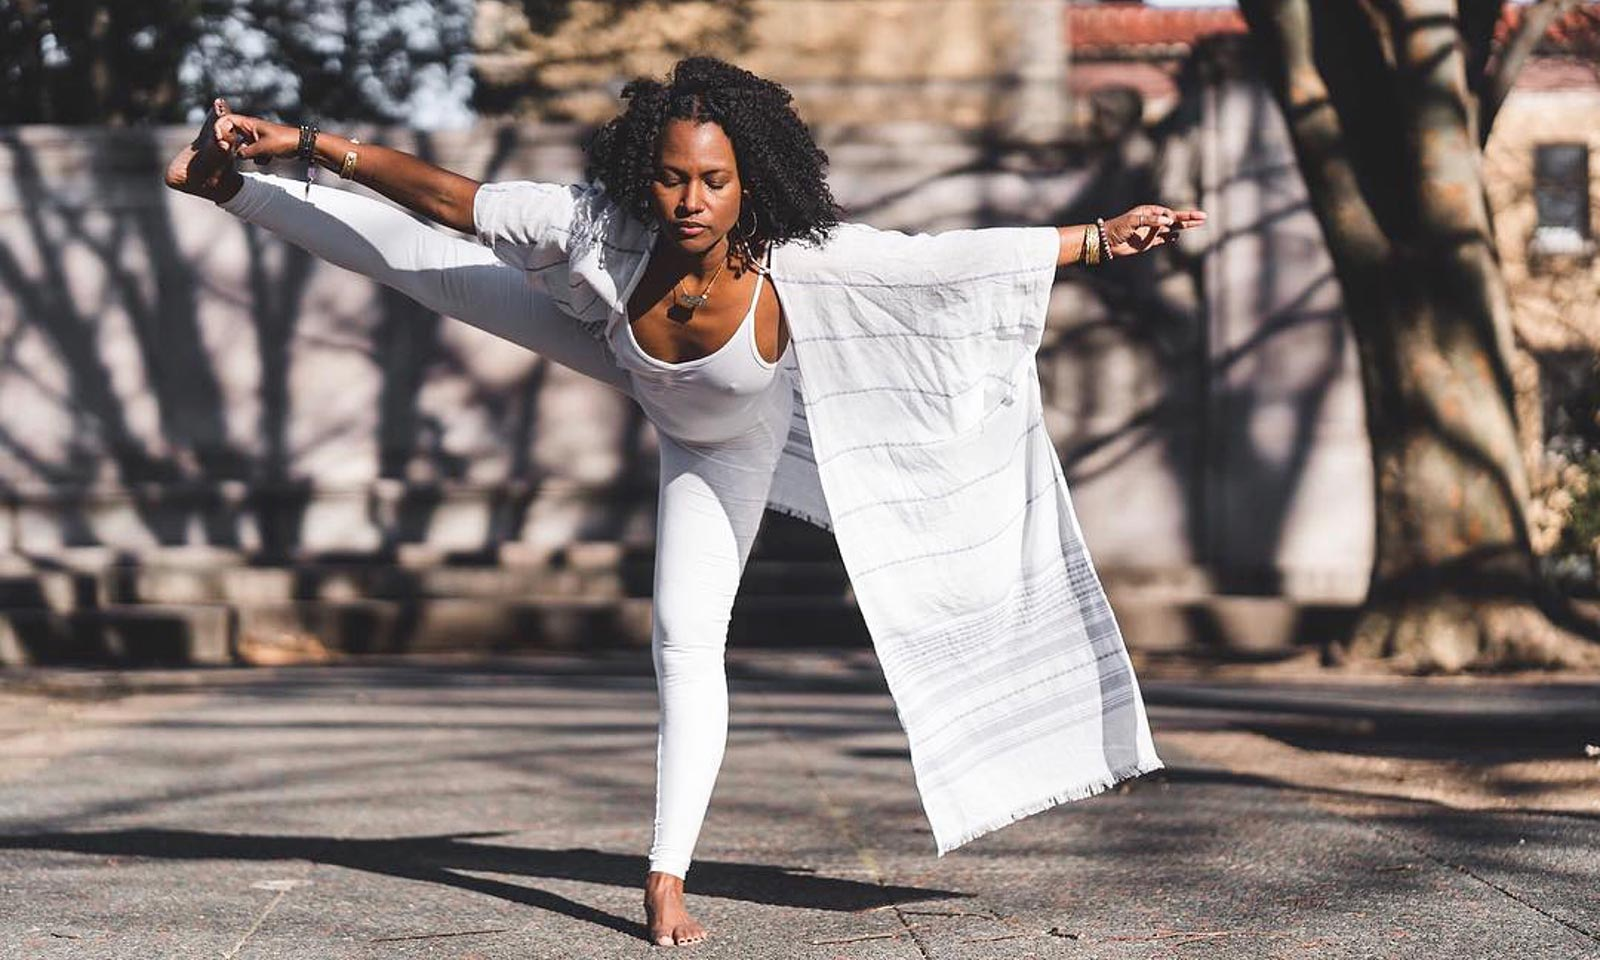 faith hunter yoga washington dc